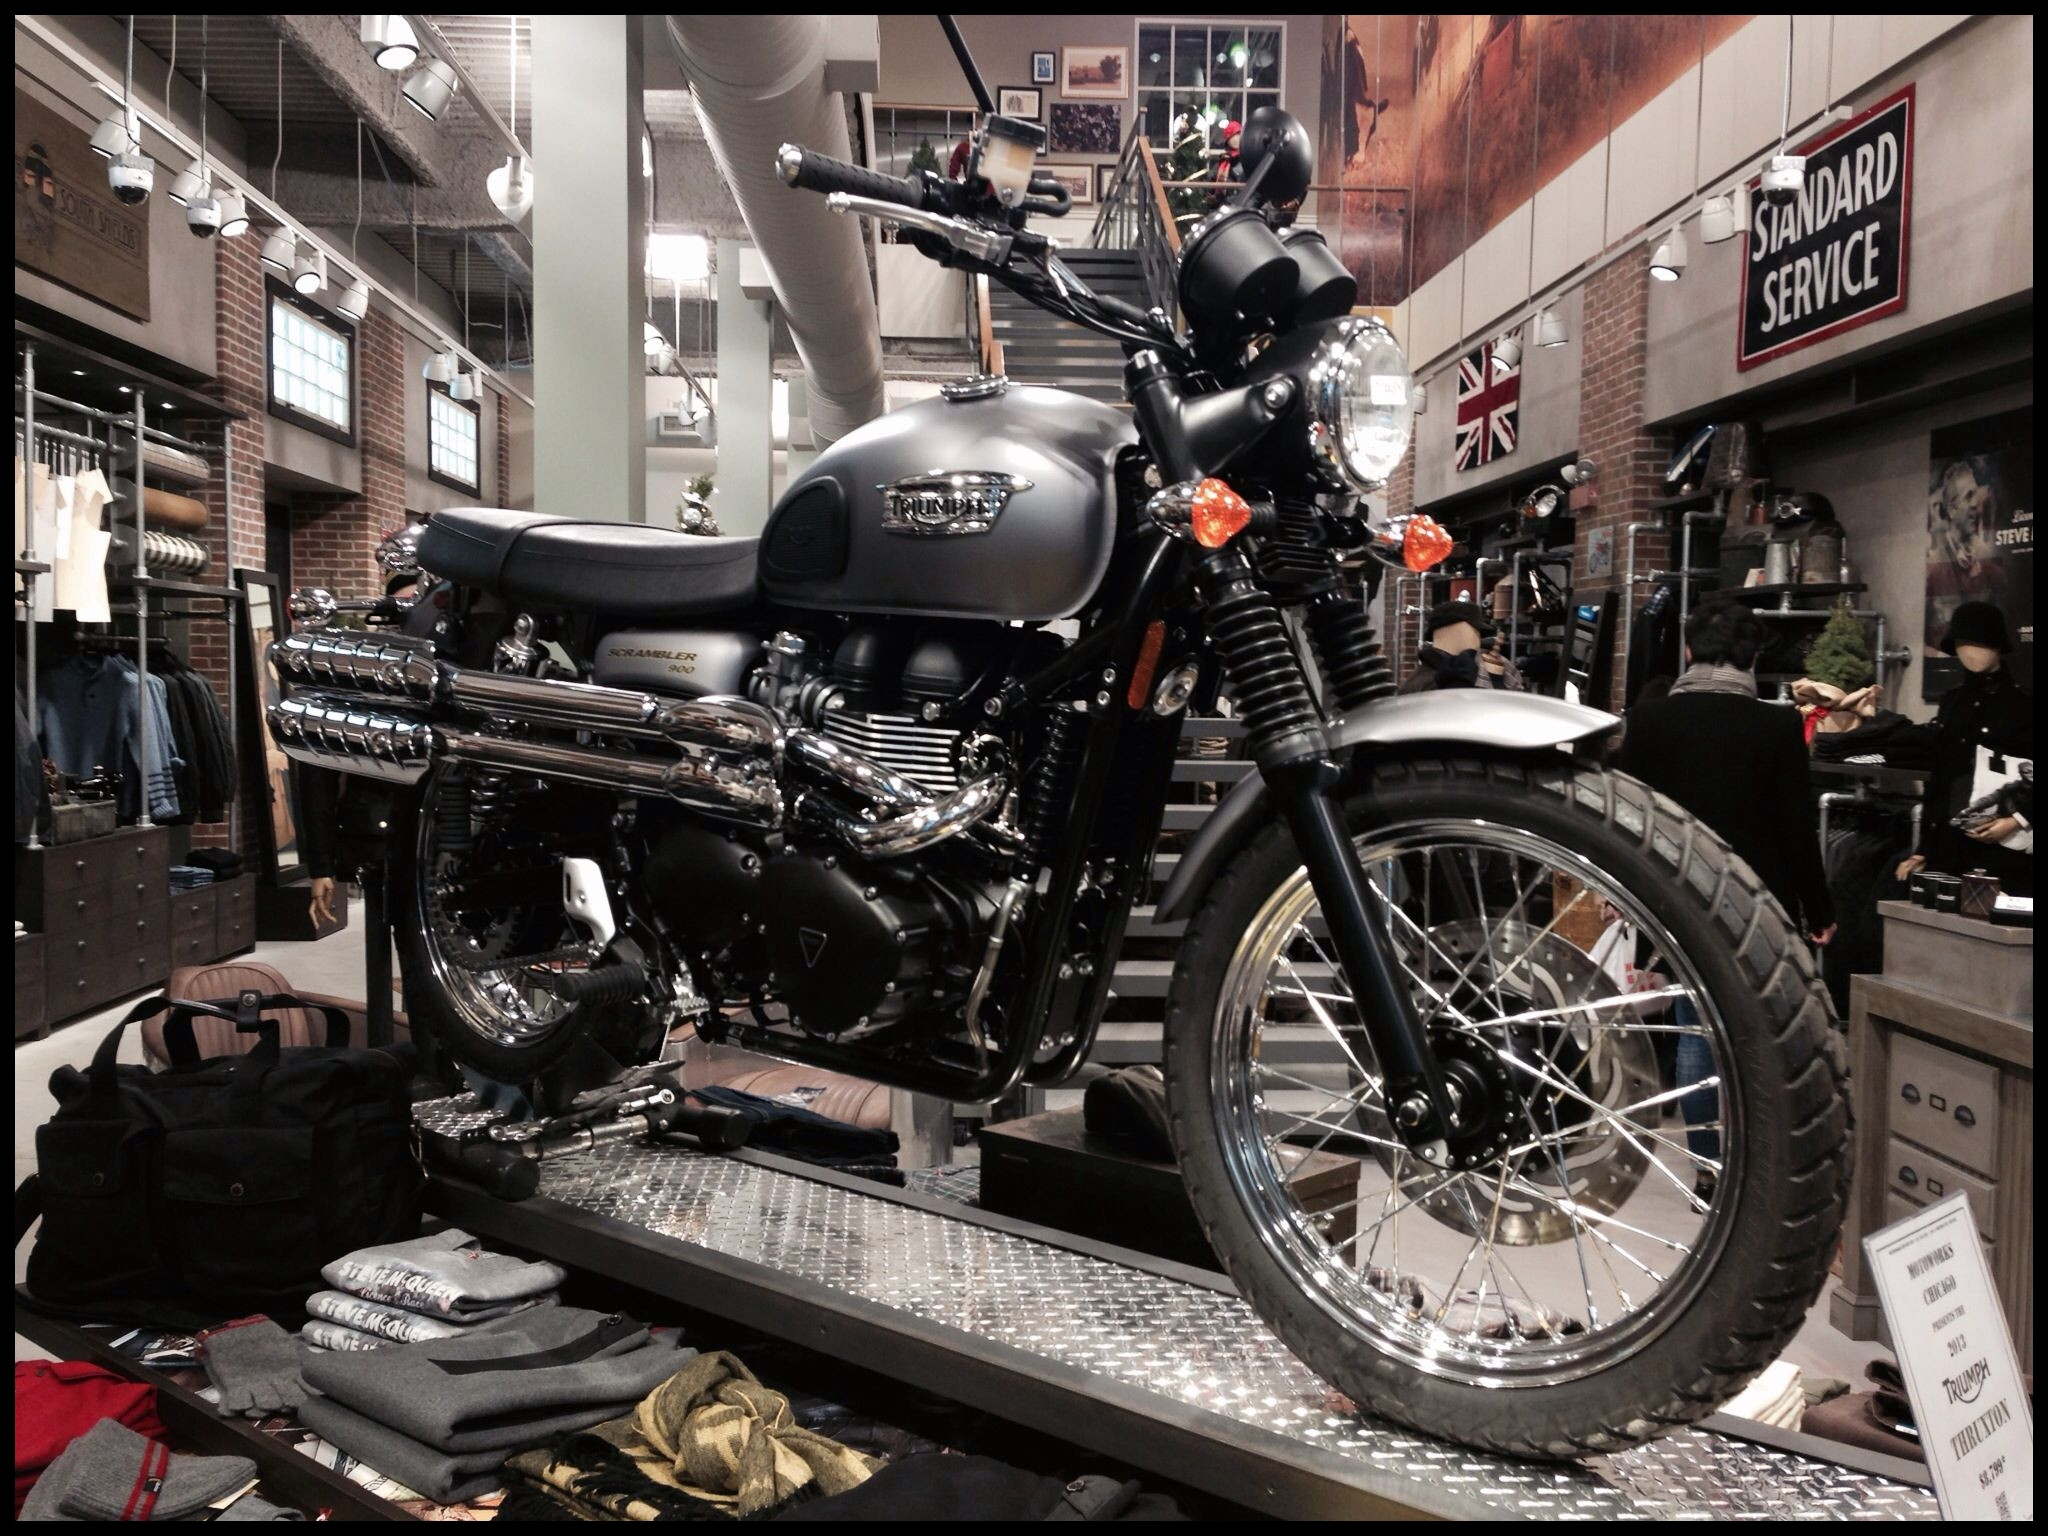 Chicago Bmw Motorcycles Beautiful Triumph In Barbour Store Chicago Vintage Motorbikes